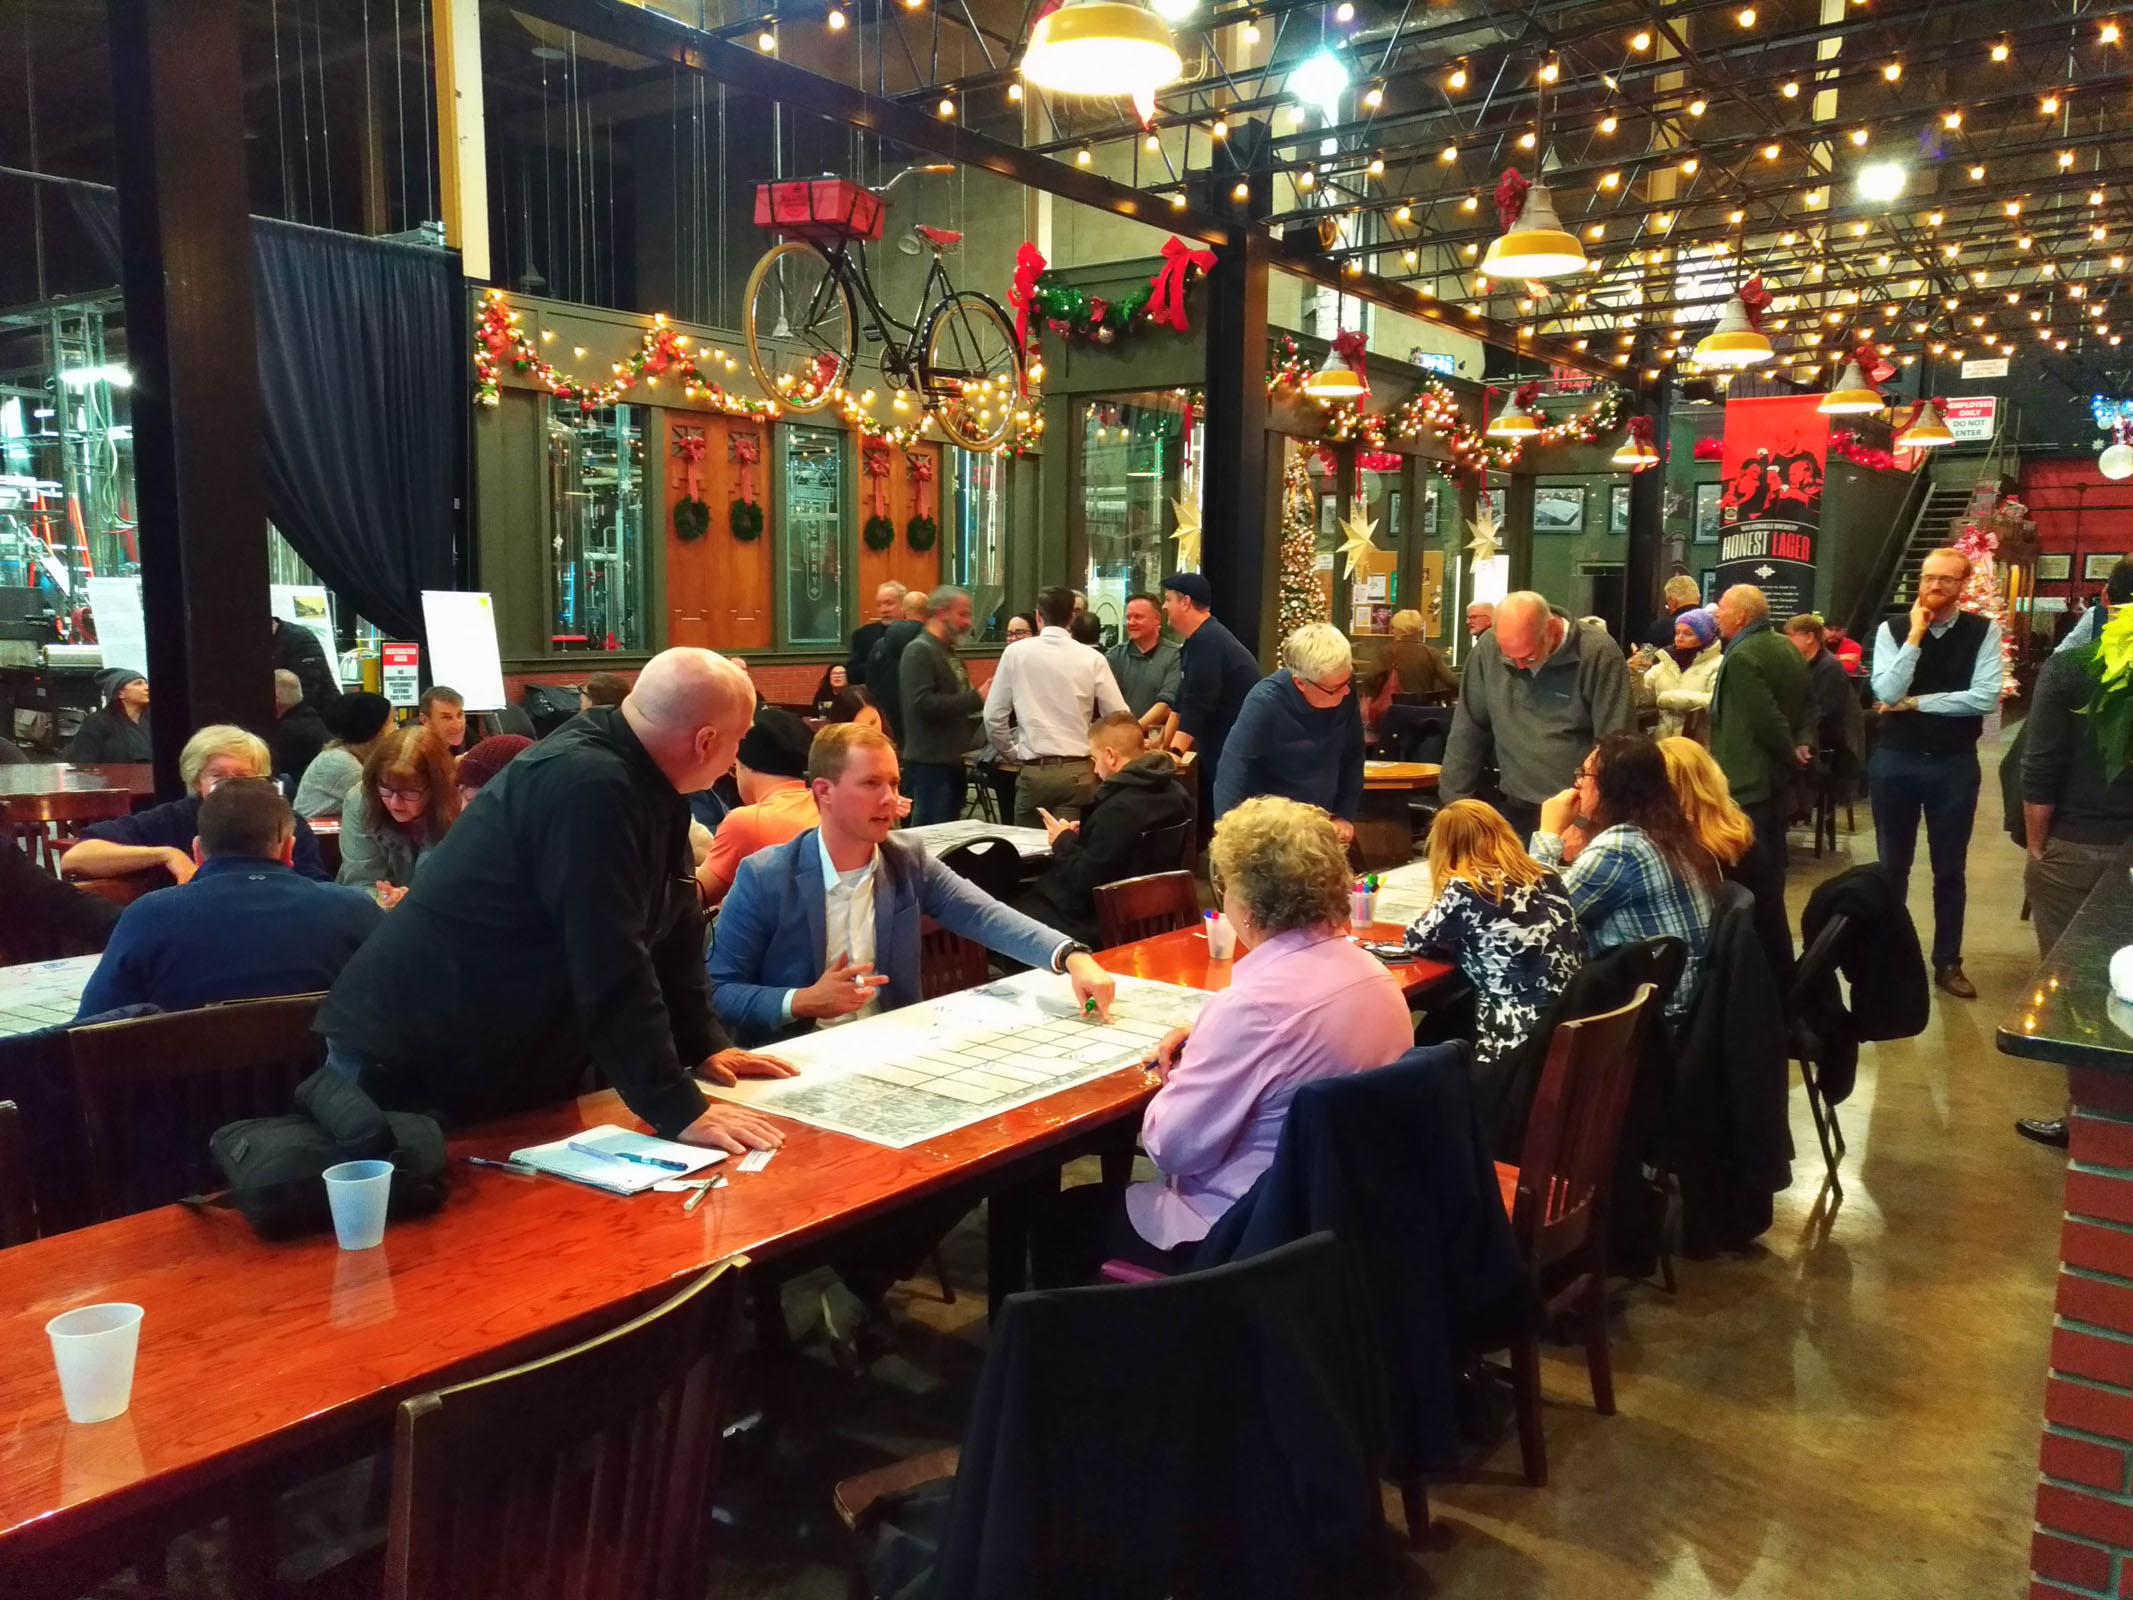 Visioning workshop discussions at the Walkerville Brewery in December, 2019